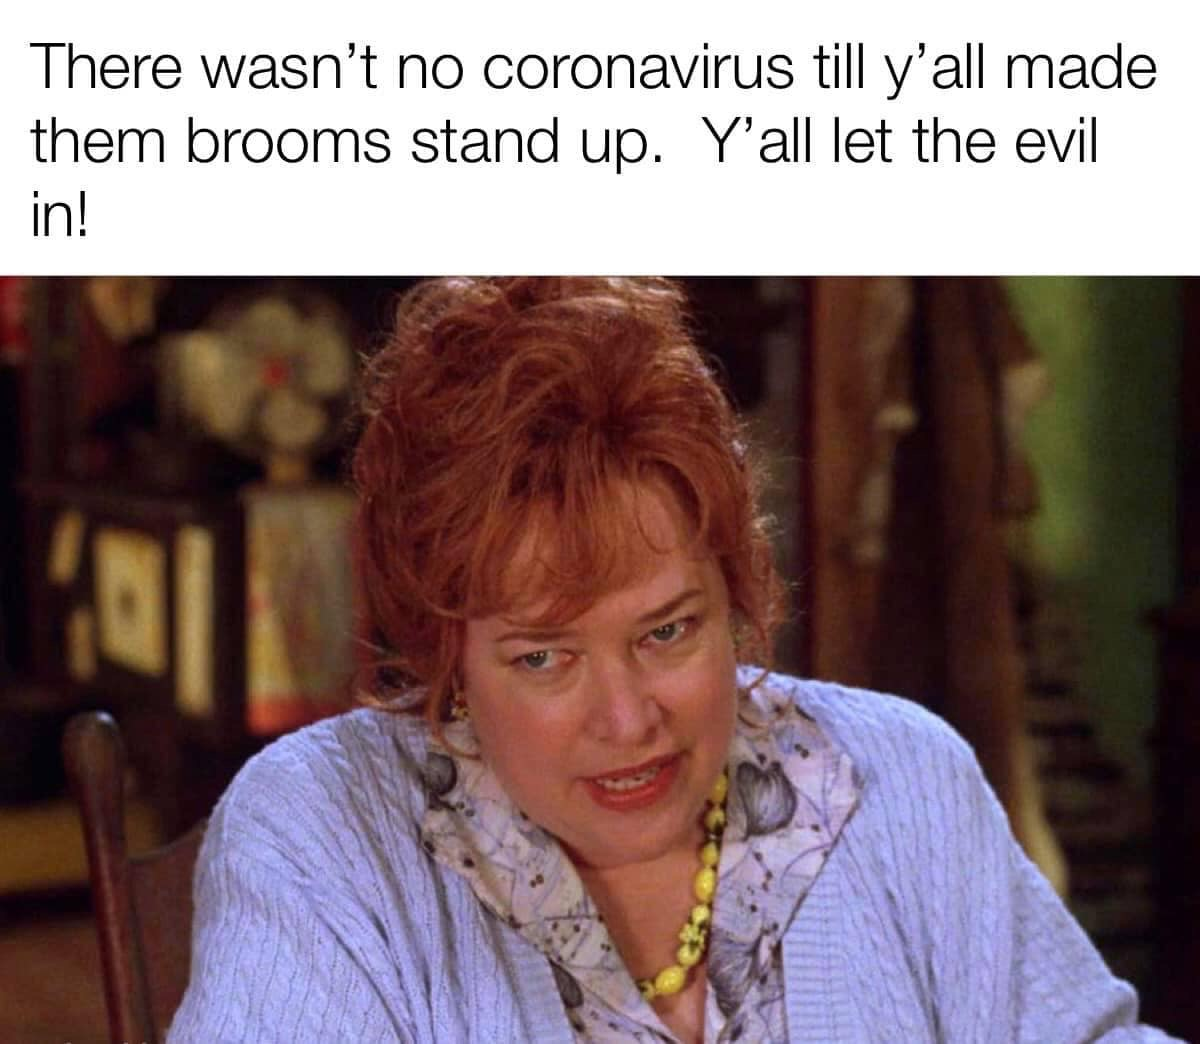 There wasnt no coronavirus until you all made them brooms stand up You let the evil in